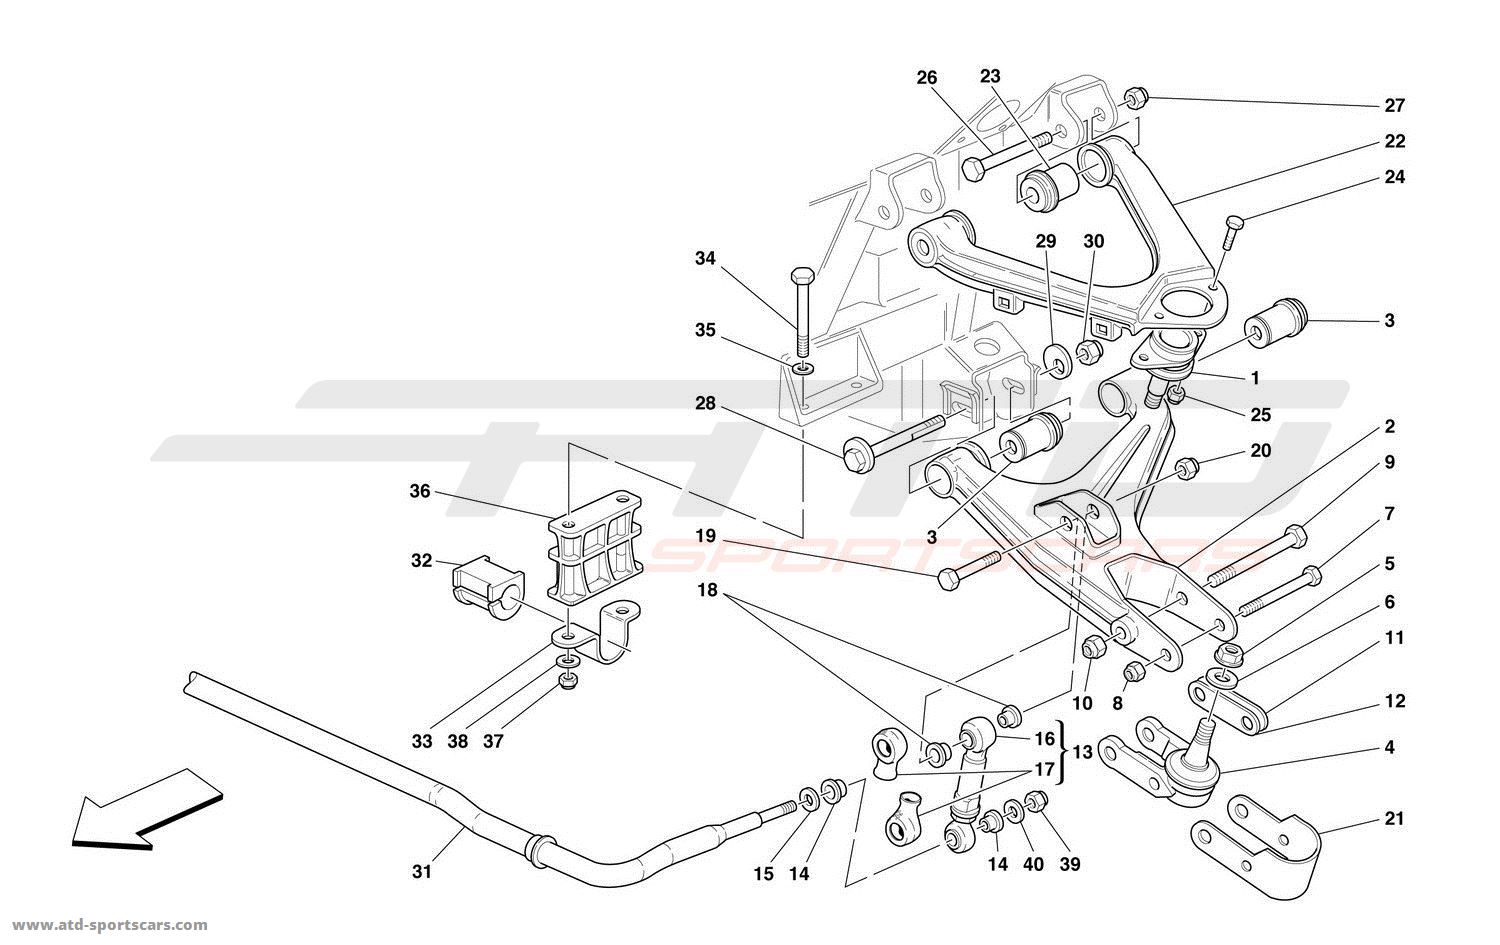 Ferrari 550 Barchetta Undercarriage Parts At Atd